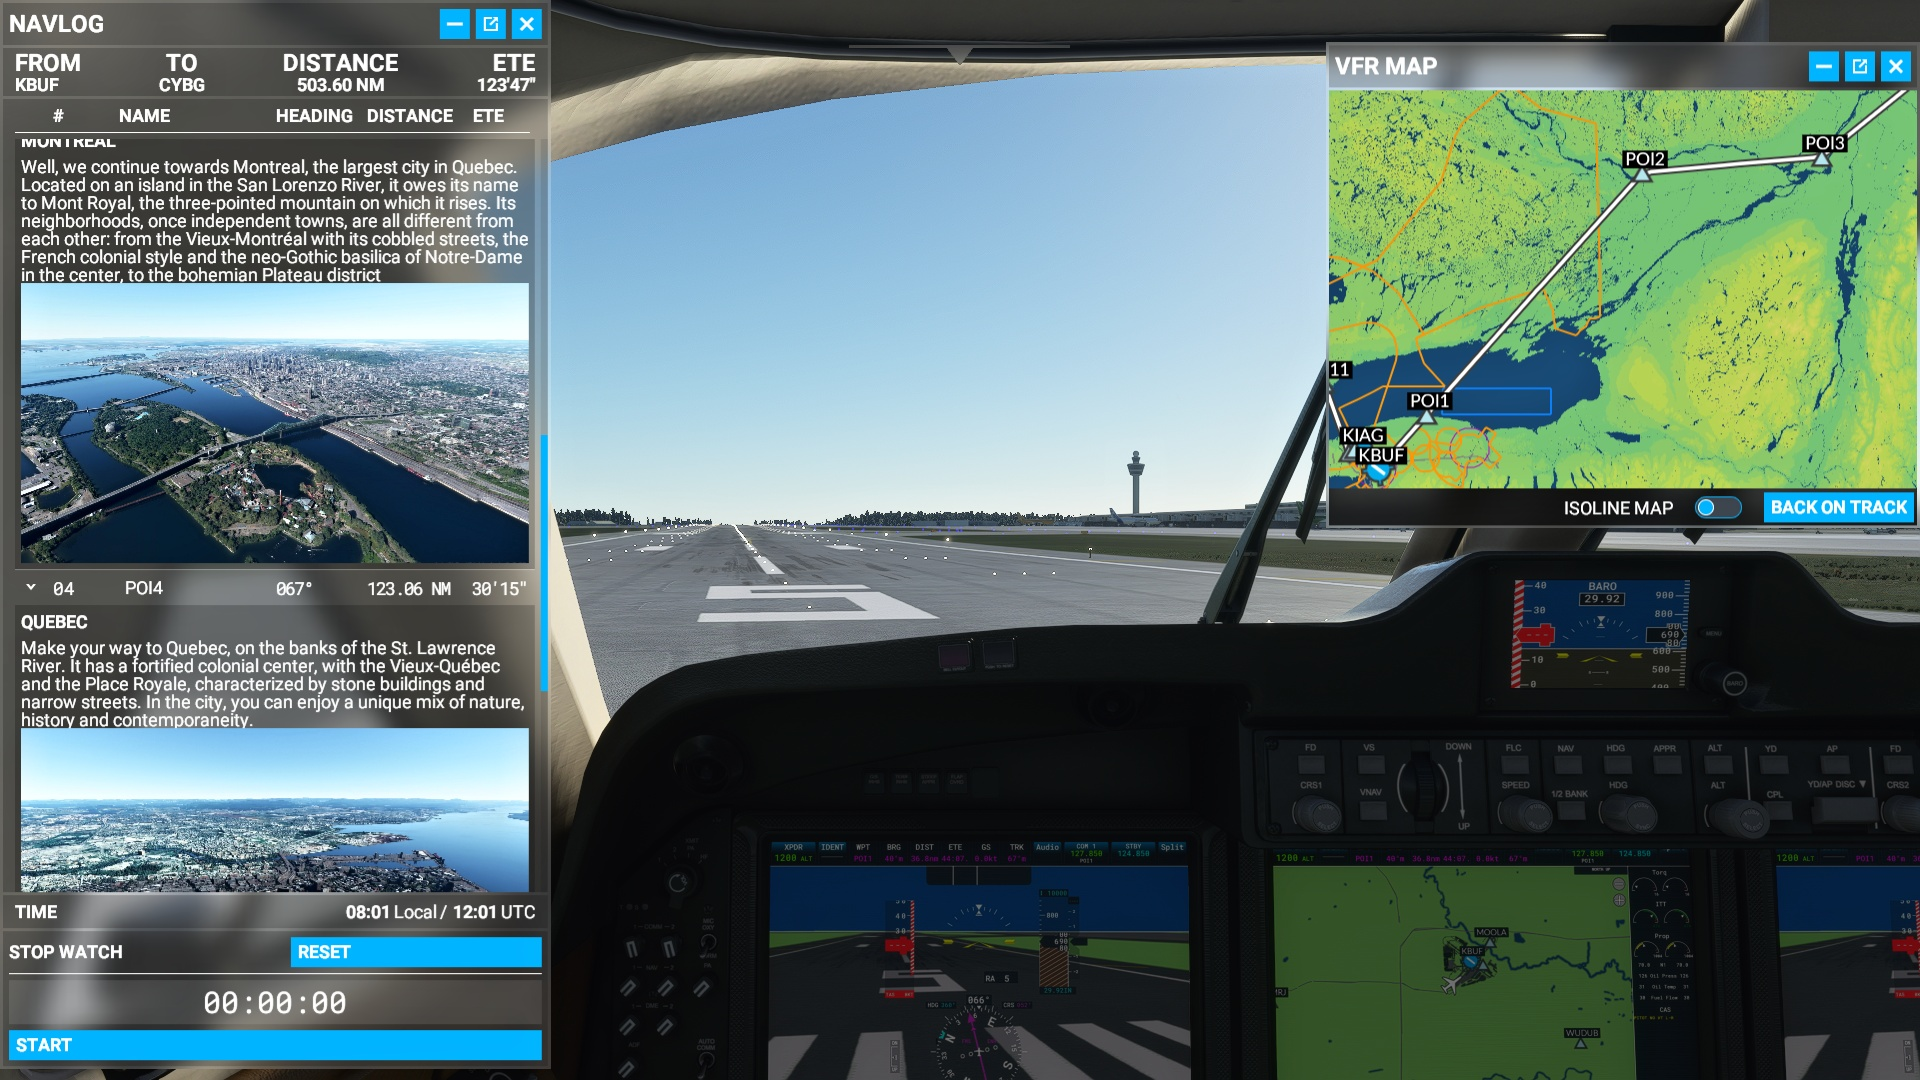 PERFECT FLIGHT - CROSSING THE WORLD MSFS